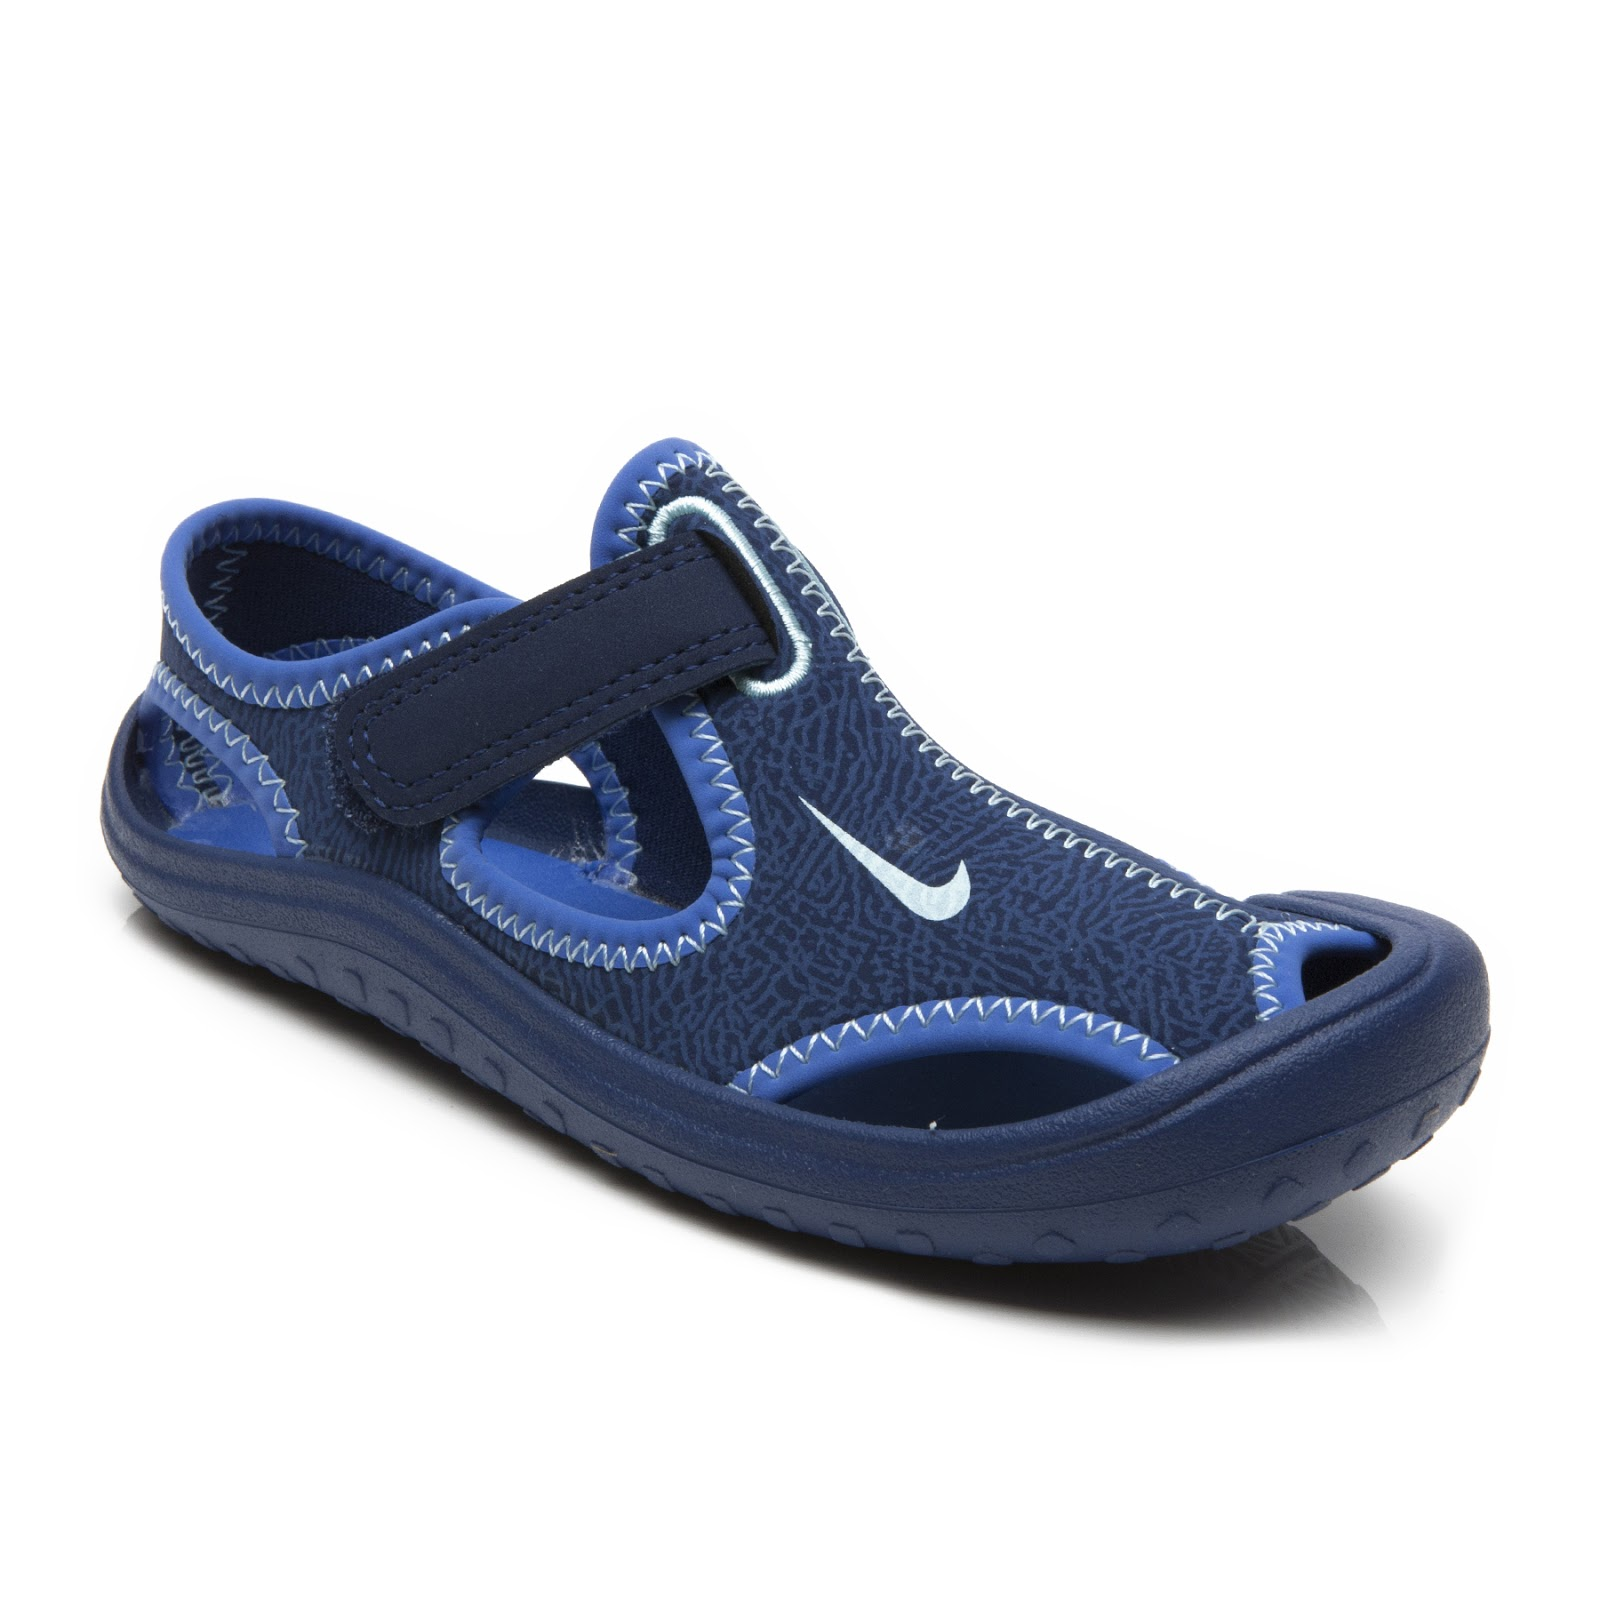 68c93dbe4426ce ... where can i buy nike sunray protect sandal 6eff8 99e77